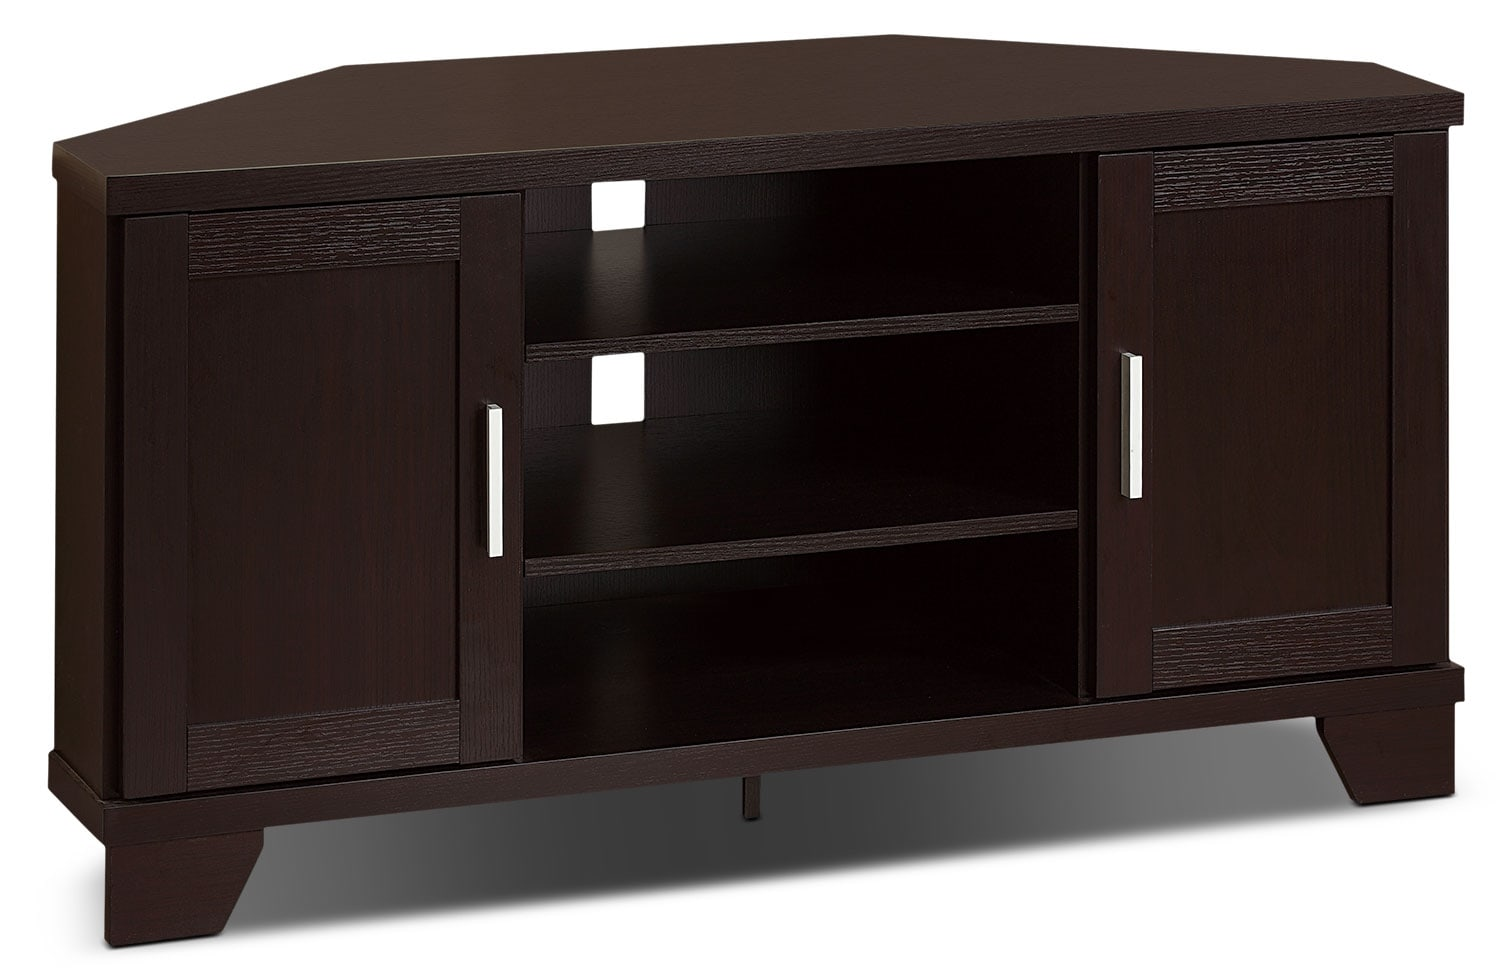 bailey 47 corner tv stand the brick. Black Bedroom Furniture Sets. Home Design Ideas